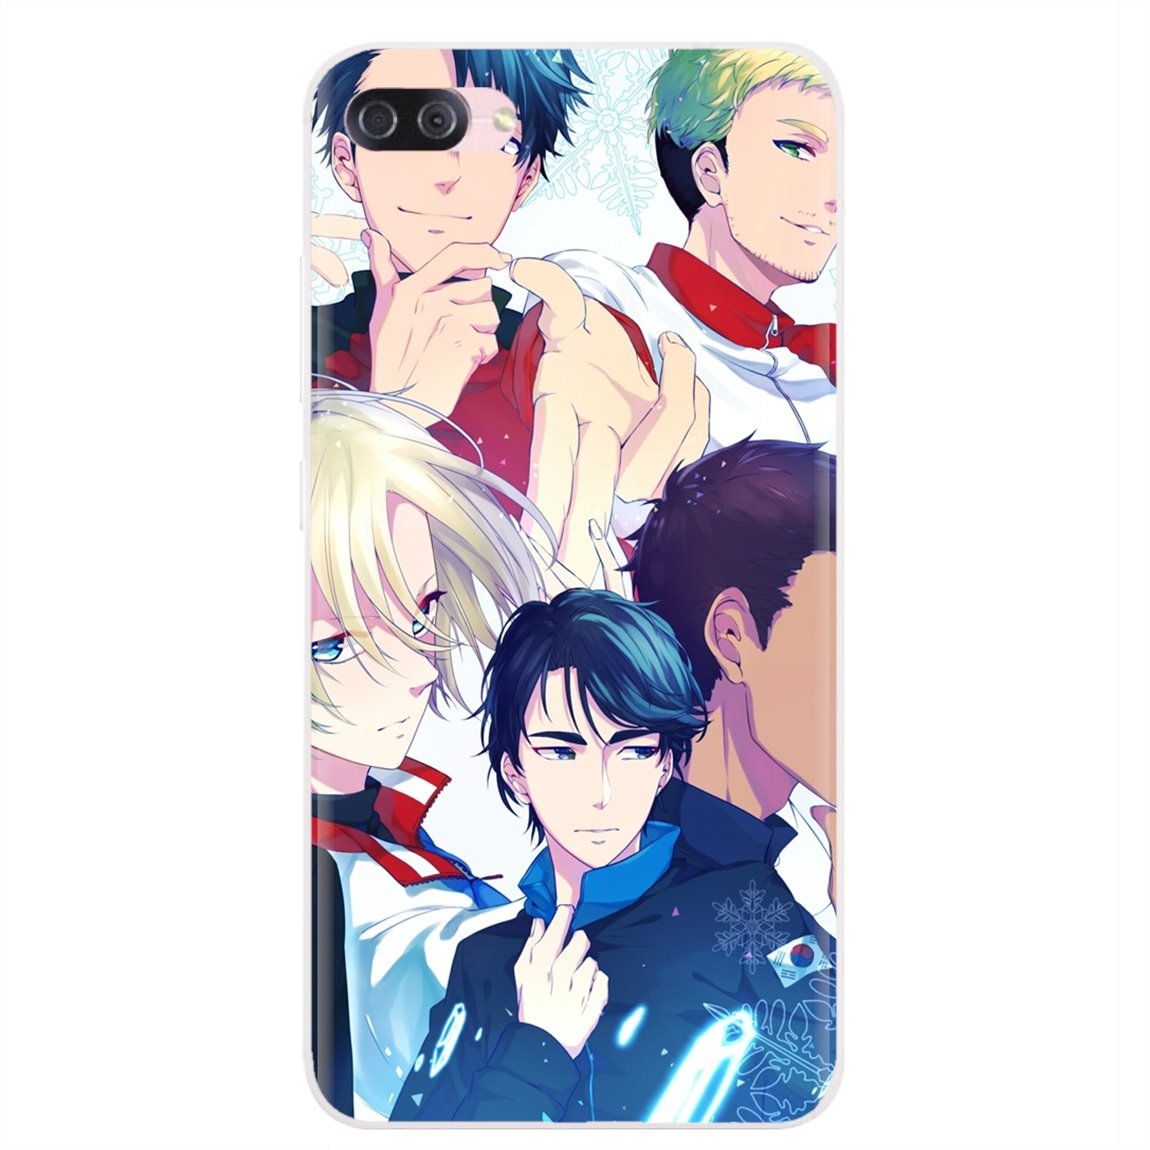 Personalized Silicone Phone Case Yuri On Ice Anime Wallpaper For